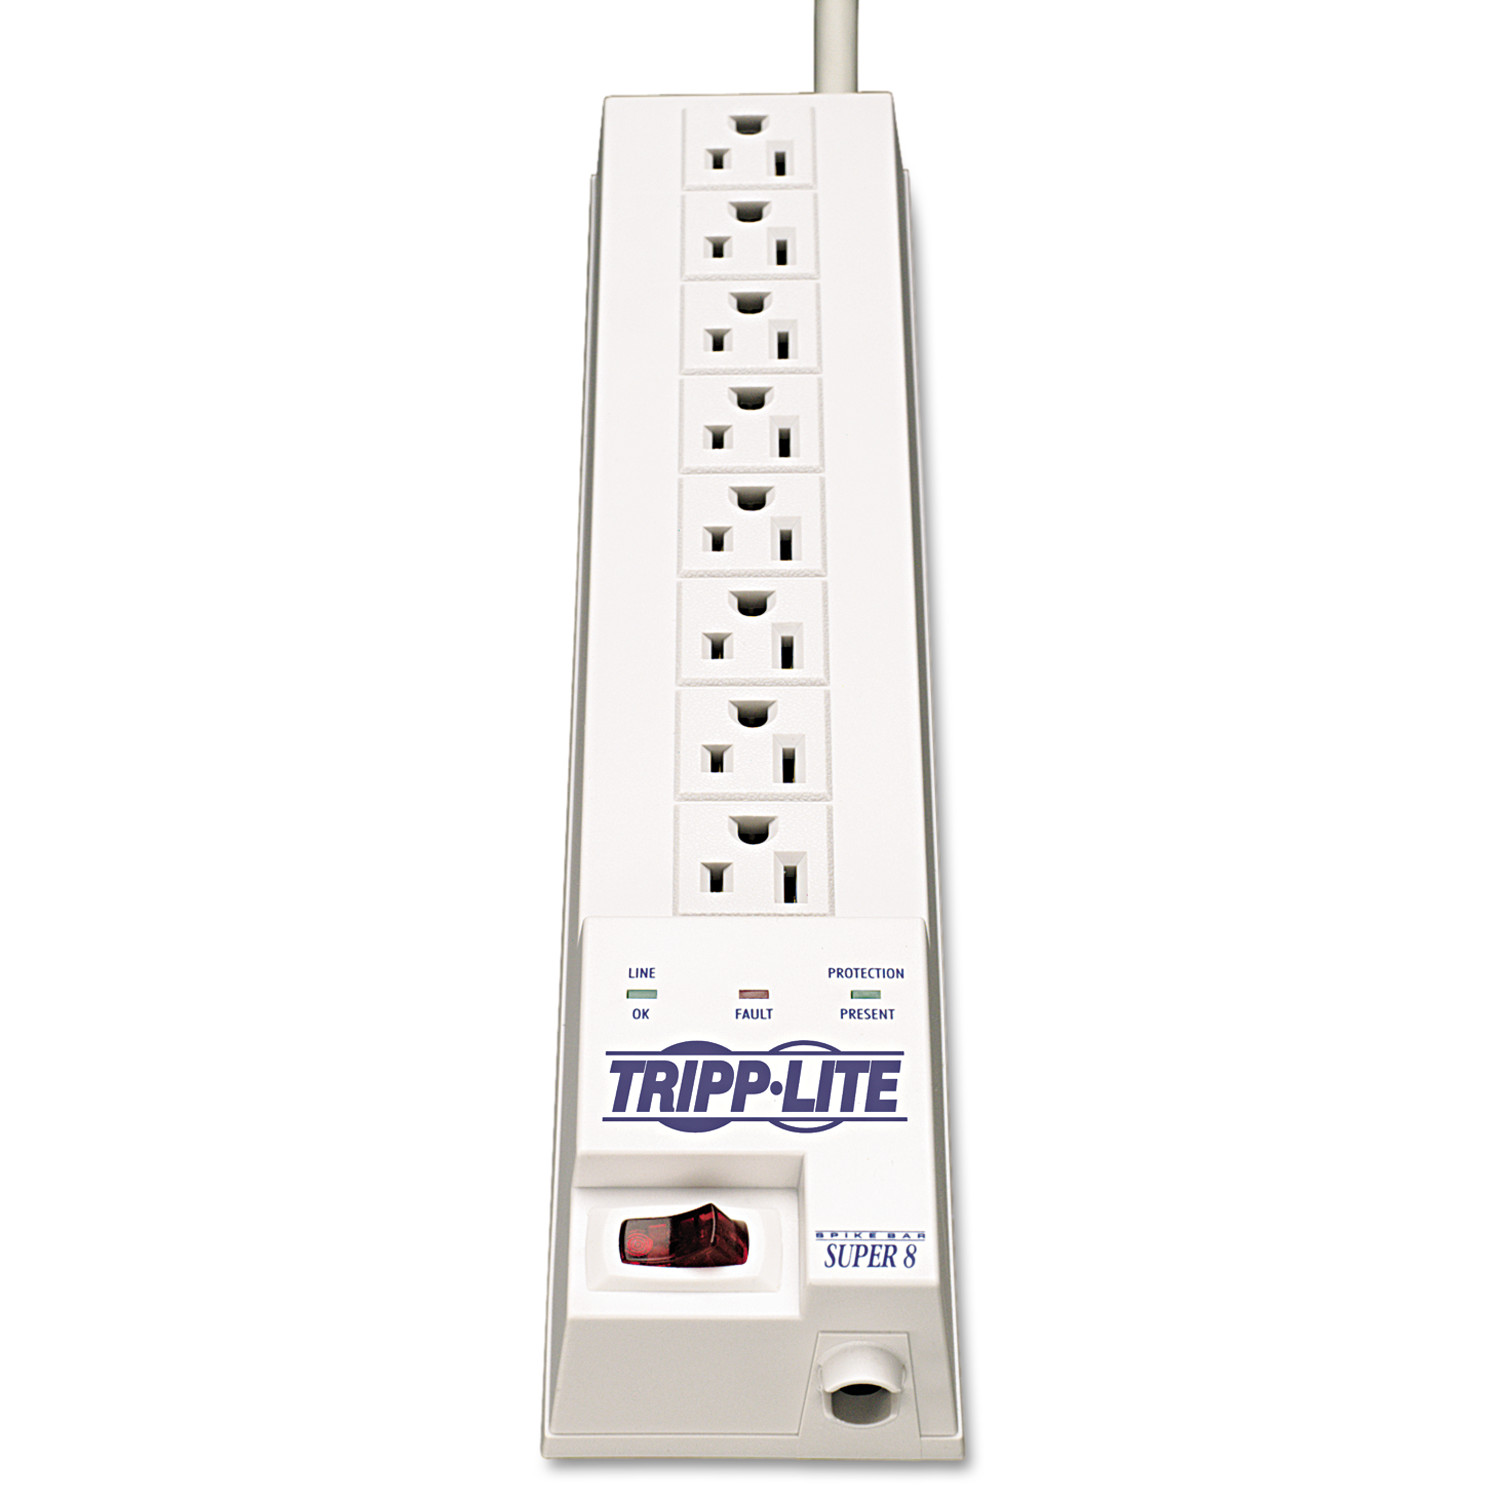 Tripp Lite SK6-6 Protect It! Surge Suppressor, 8 Outlets, 8 ft Cord, 1080 Joules, White